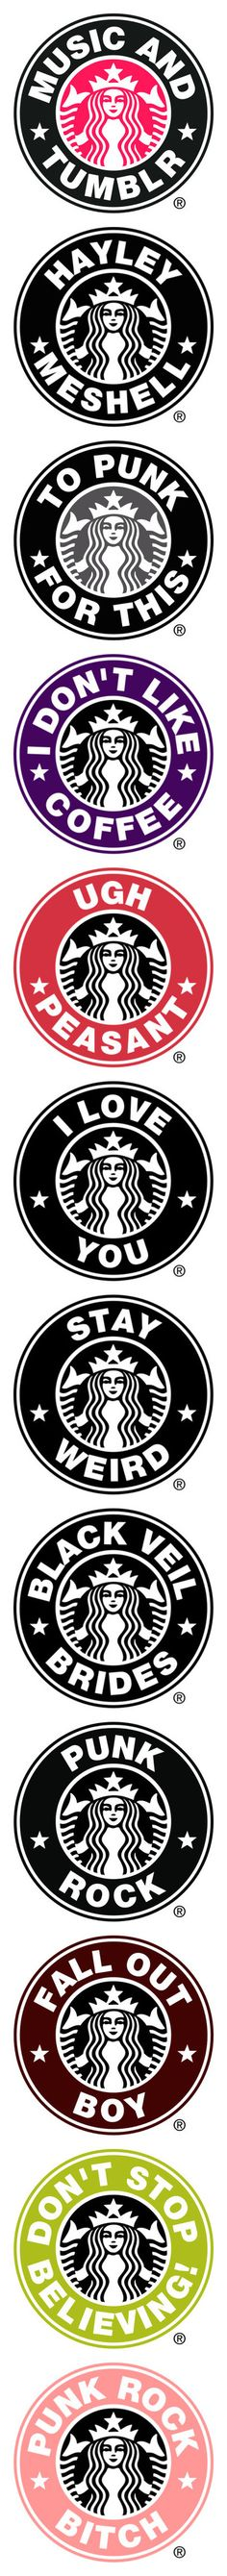 """Starbuck Logos"" by sbeathard ❤ liked on Polyvore featuring fillers, words, quotes, starbucks logos, text, phrase, saying, backgrounds, circle and doodle"